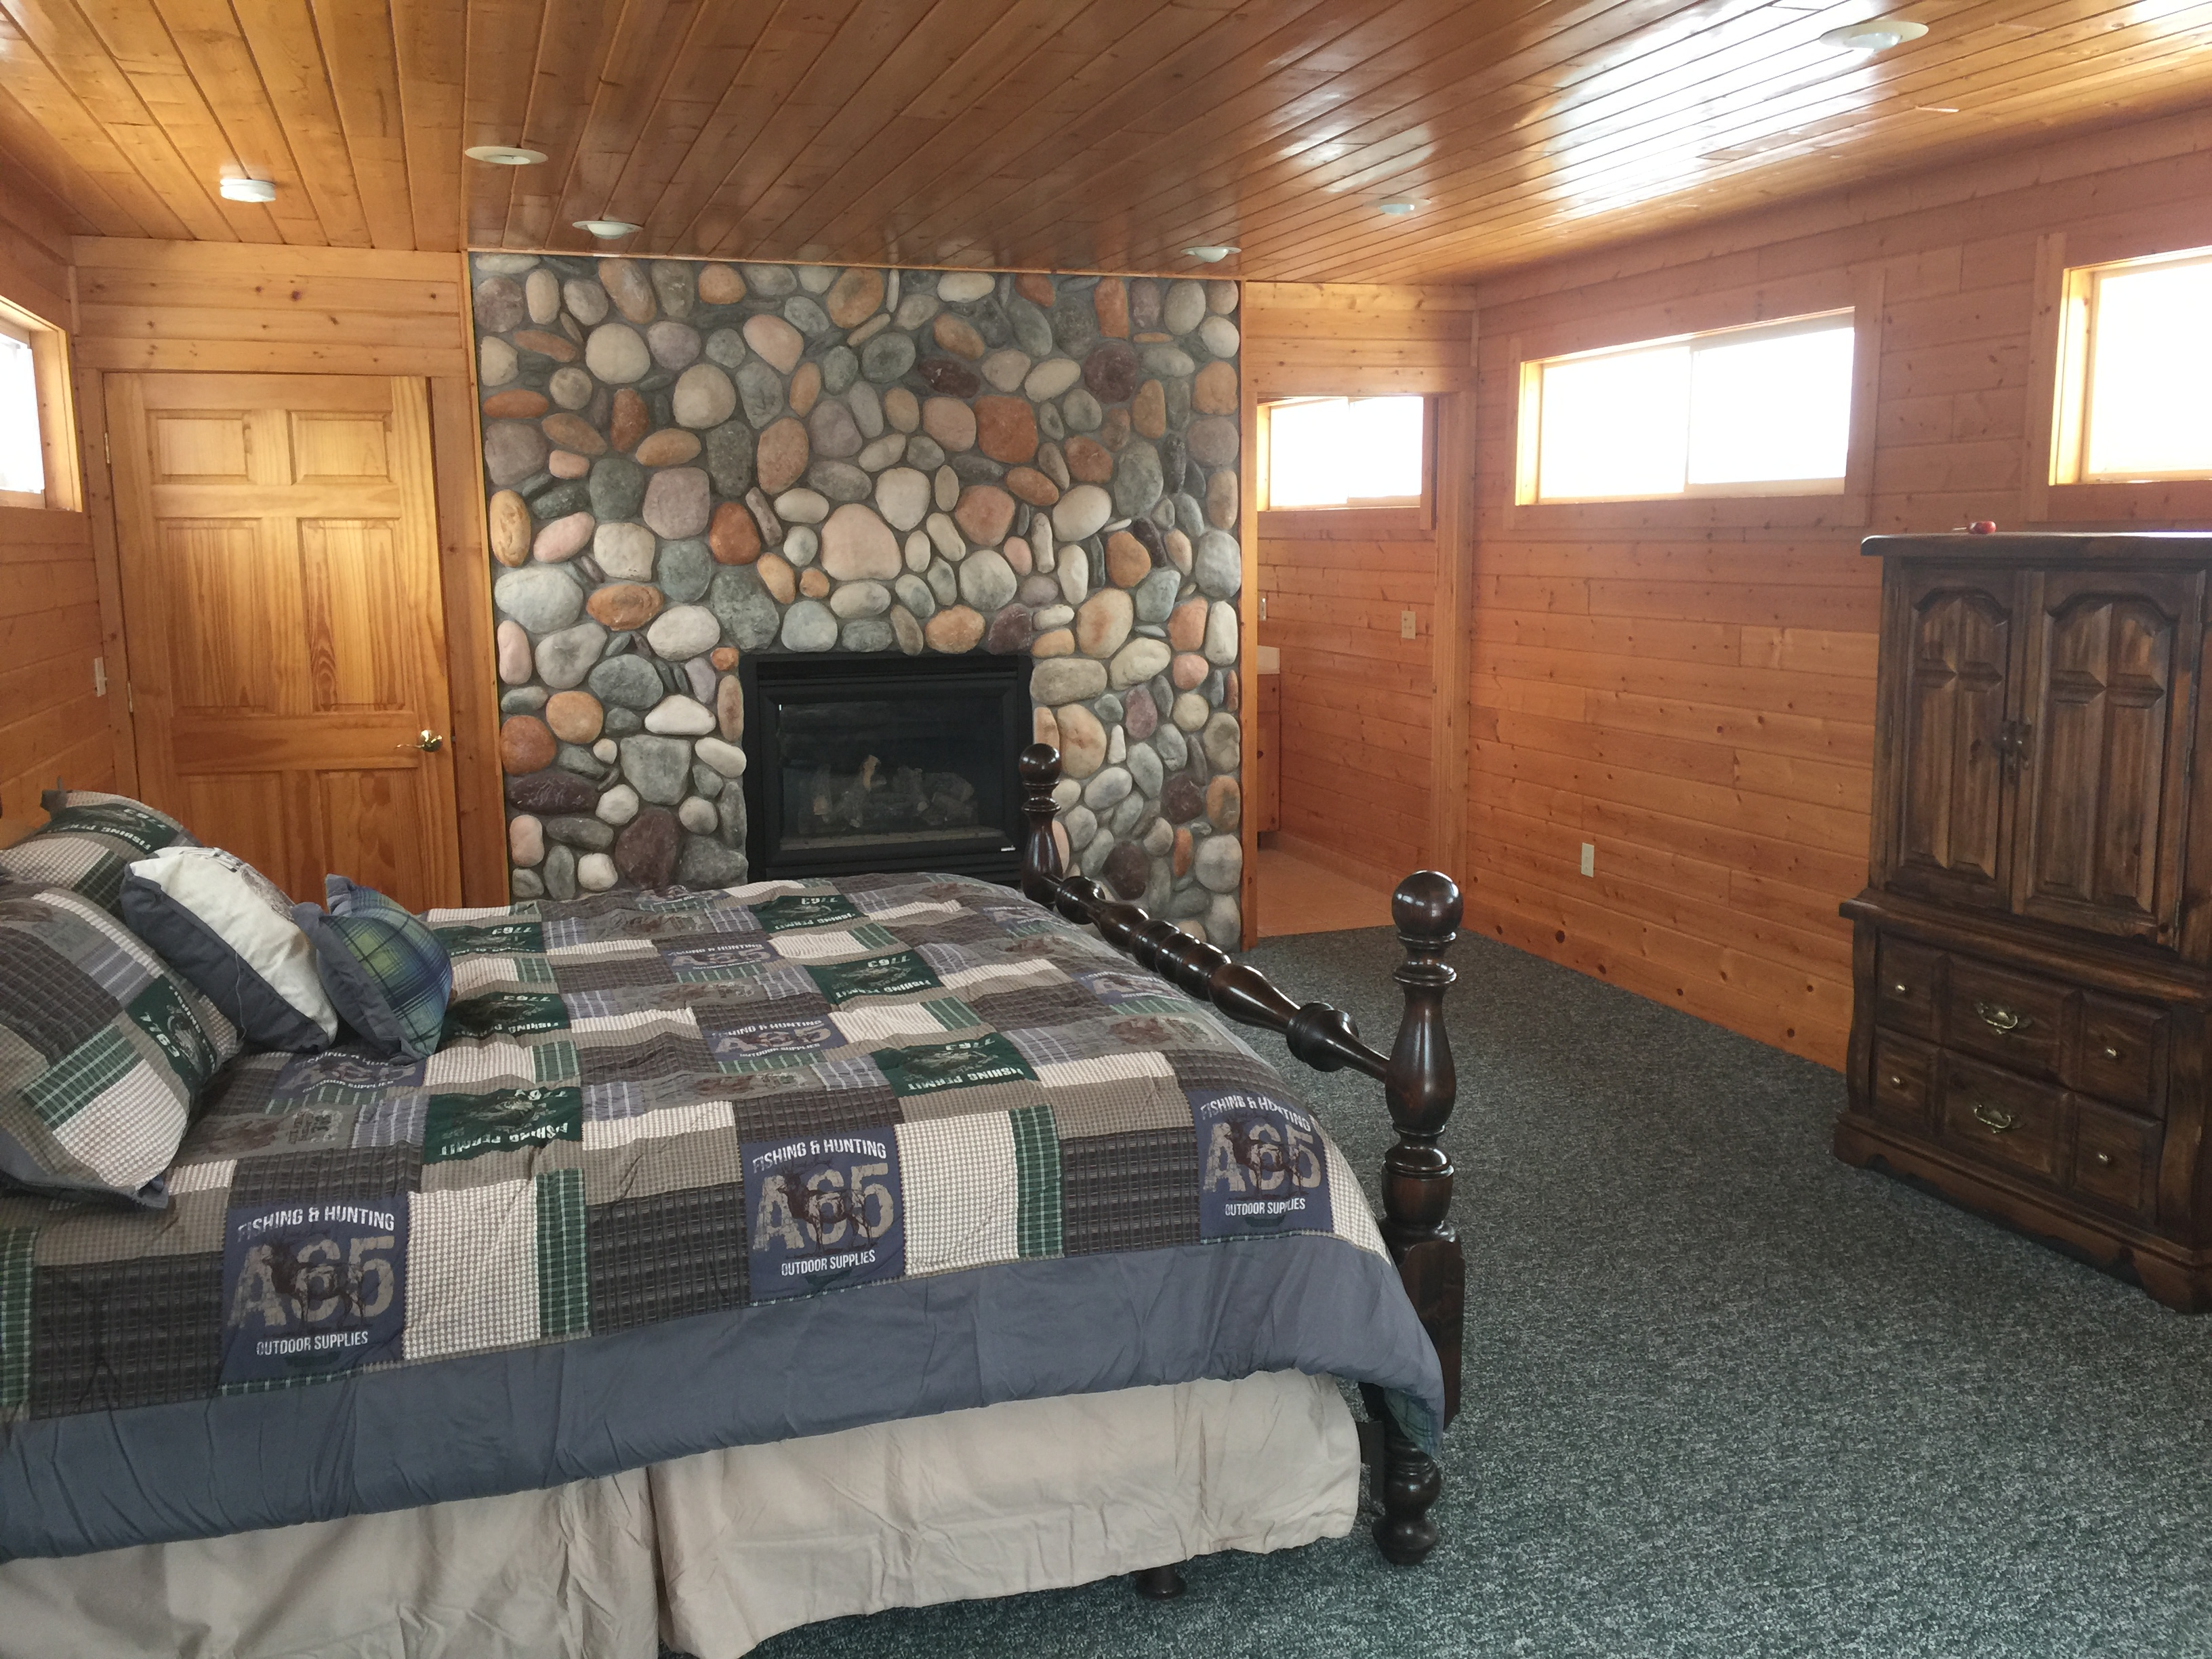 Third floor master bedroom with fireplace and private bathroom, including shower at Torch Lake Lodge. Bedroom includes private deck overlooking trees and fire pit.